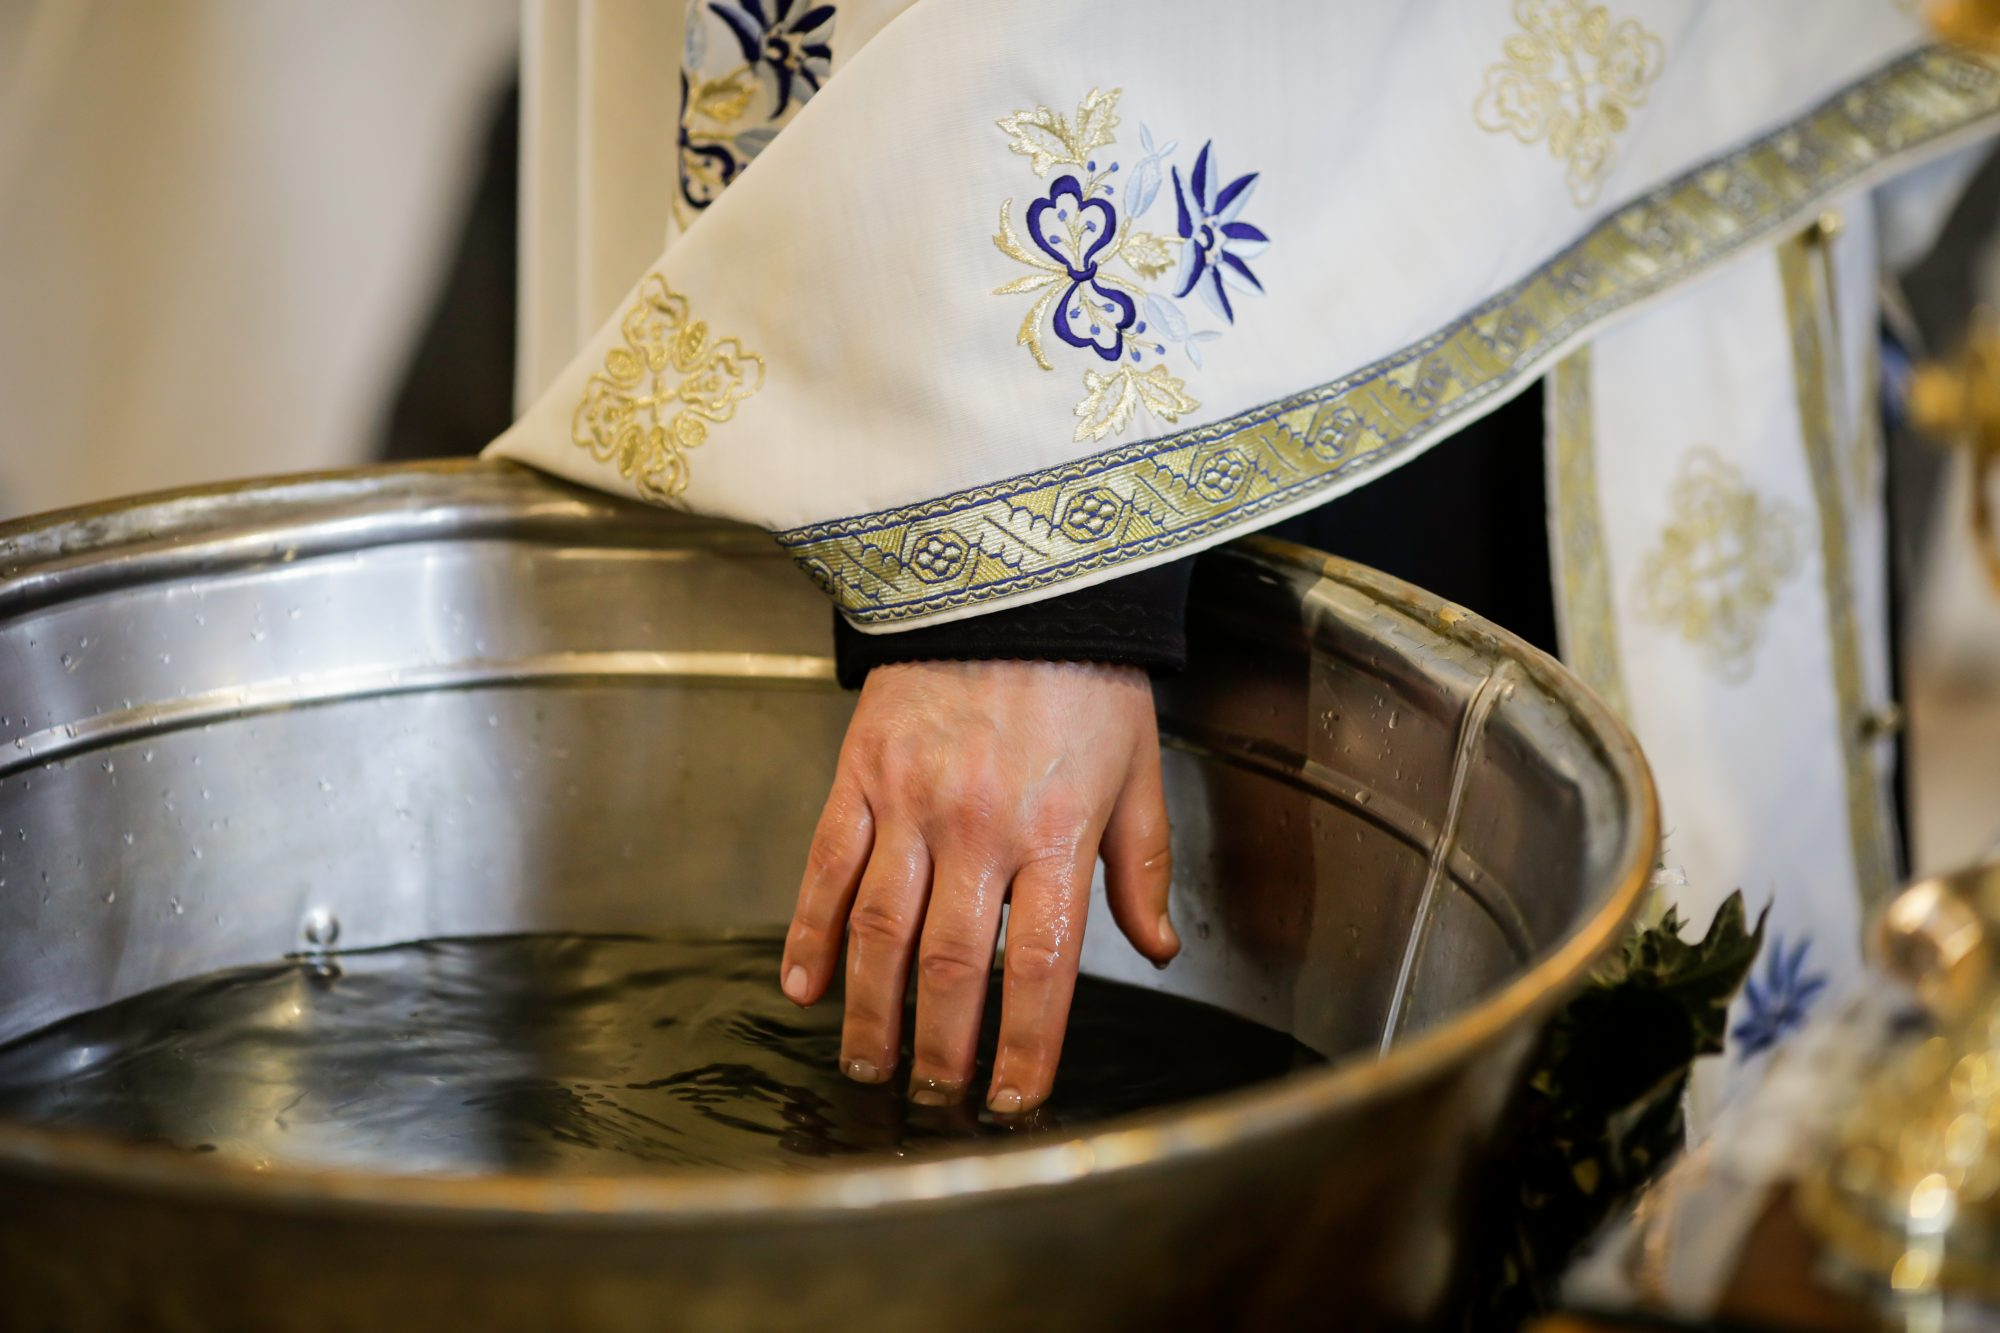 Orthodox priest testing the warmth of the water in the baptismal font